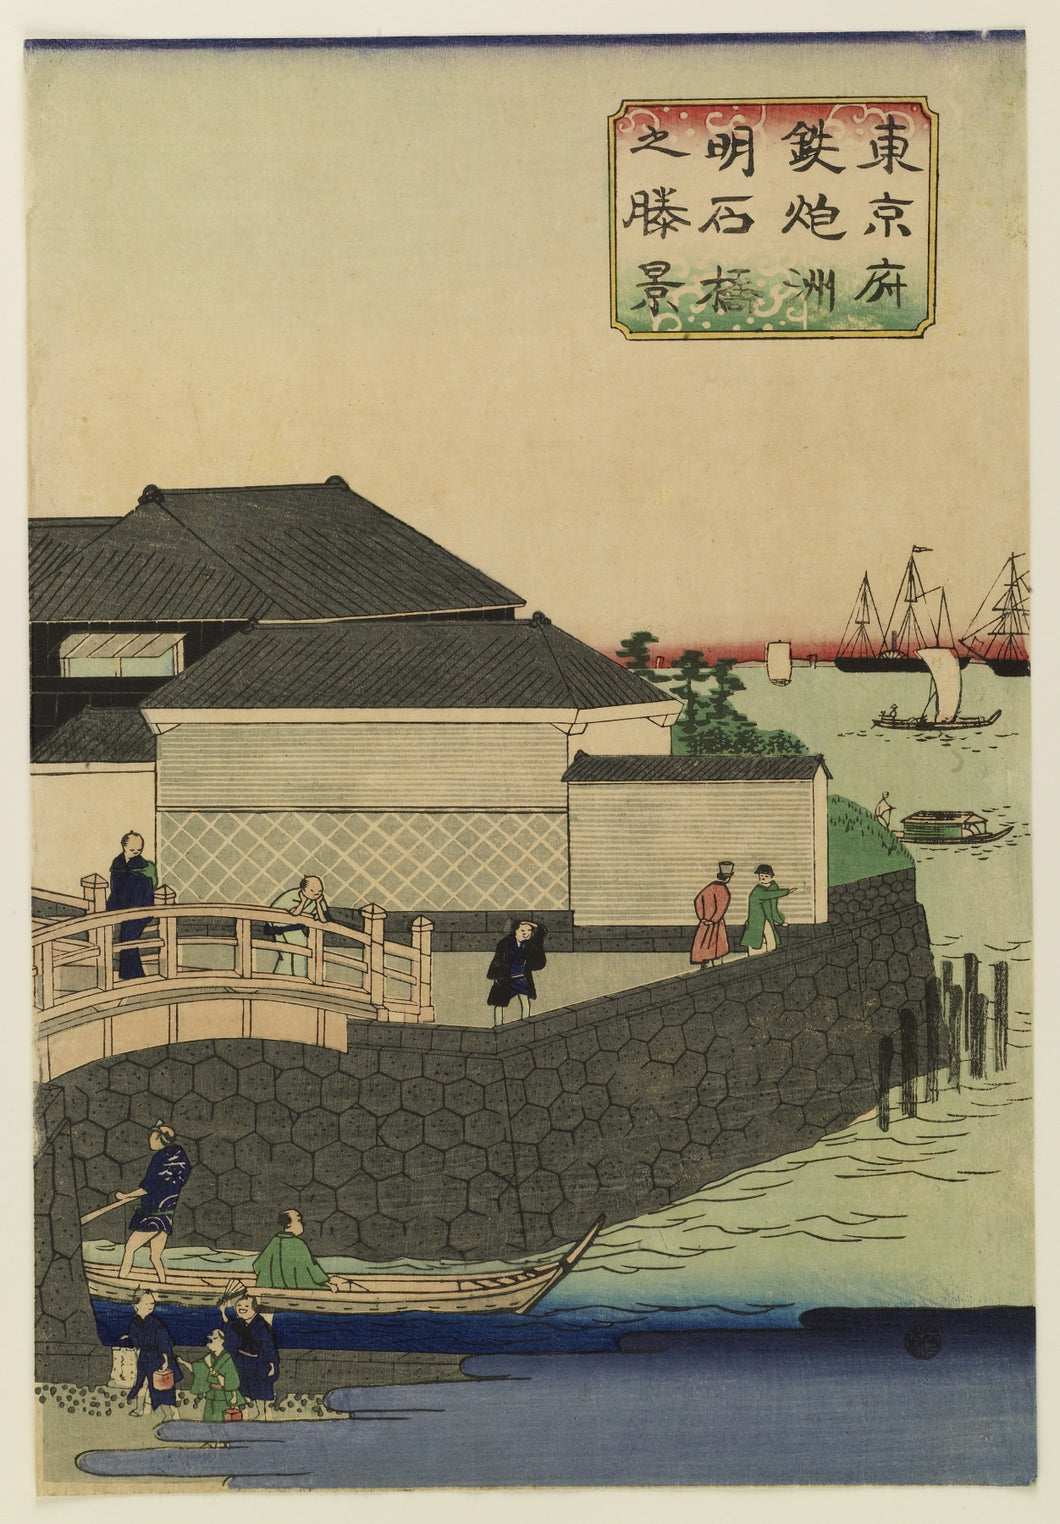 Hiroshige Utagawa, Tax Collection Office